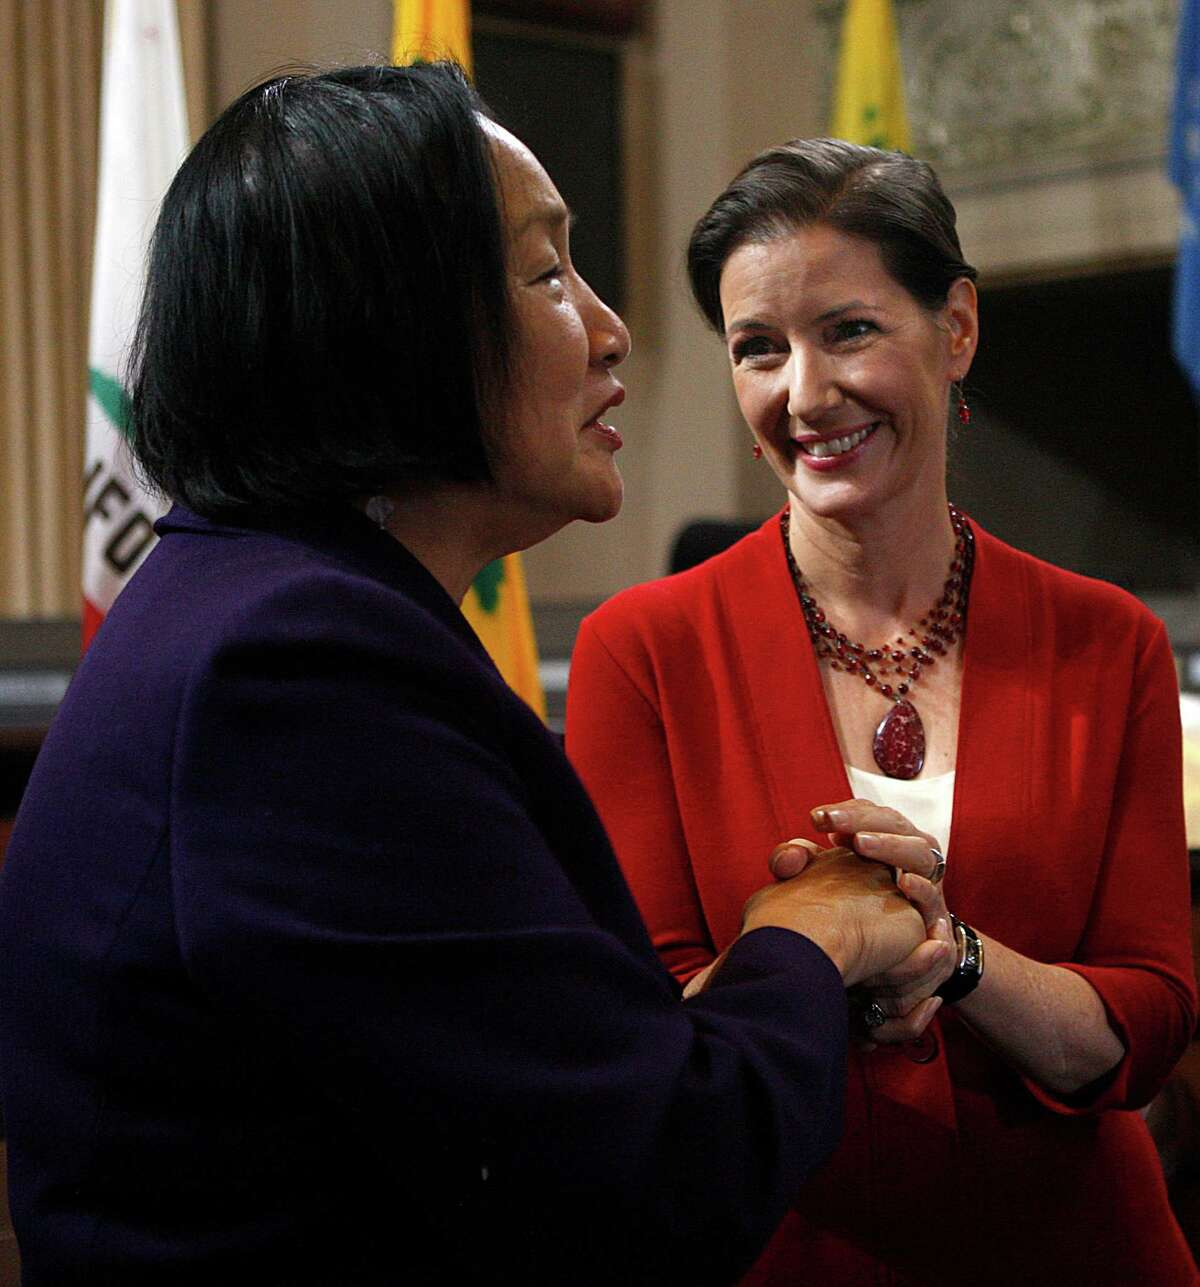 Mayor Jean Quan (left) and mayor-elect Libby Schaaf (right) talk about the upcoming period of transition at a press conference in the city council chambers at city hall in Oakland, Calif., on Thursday, November 6, 2014.